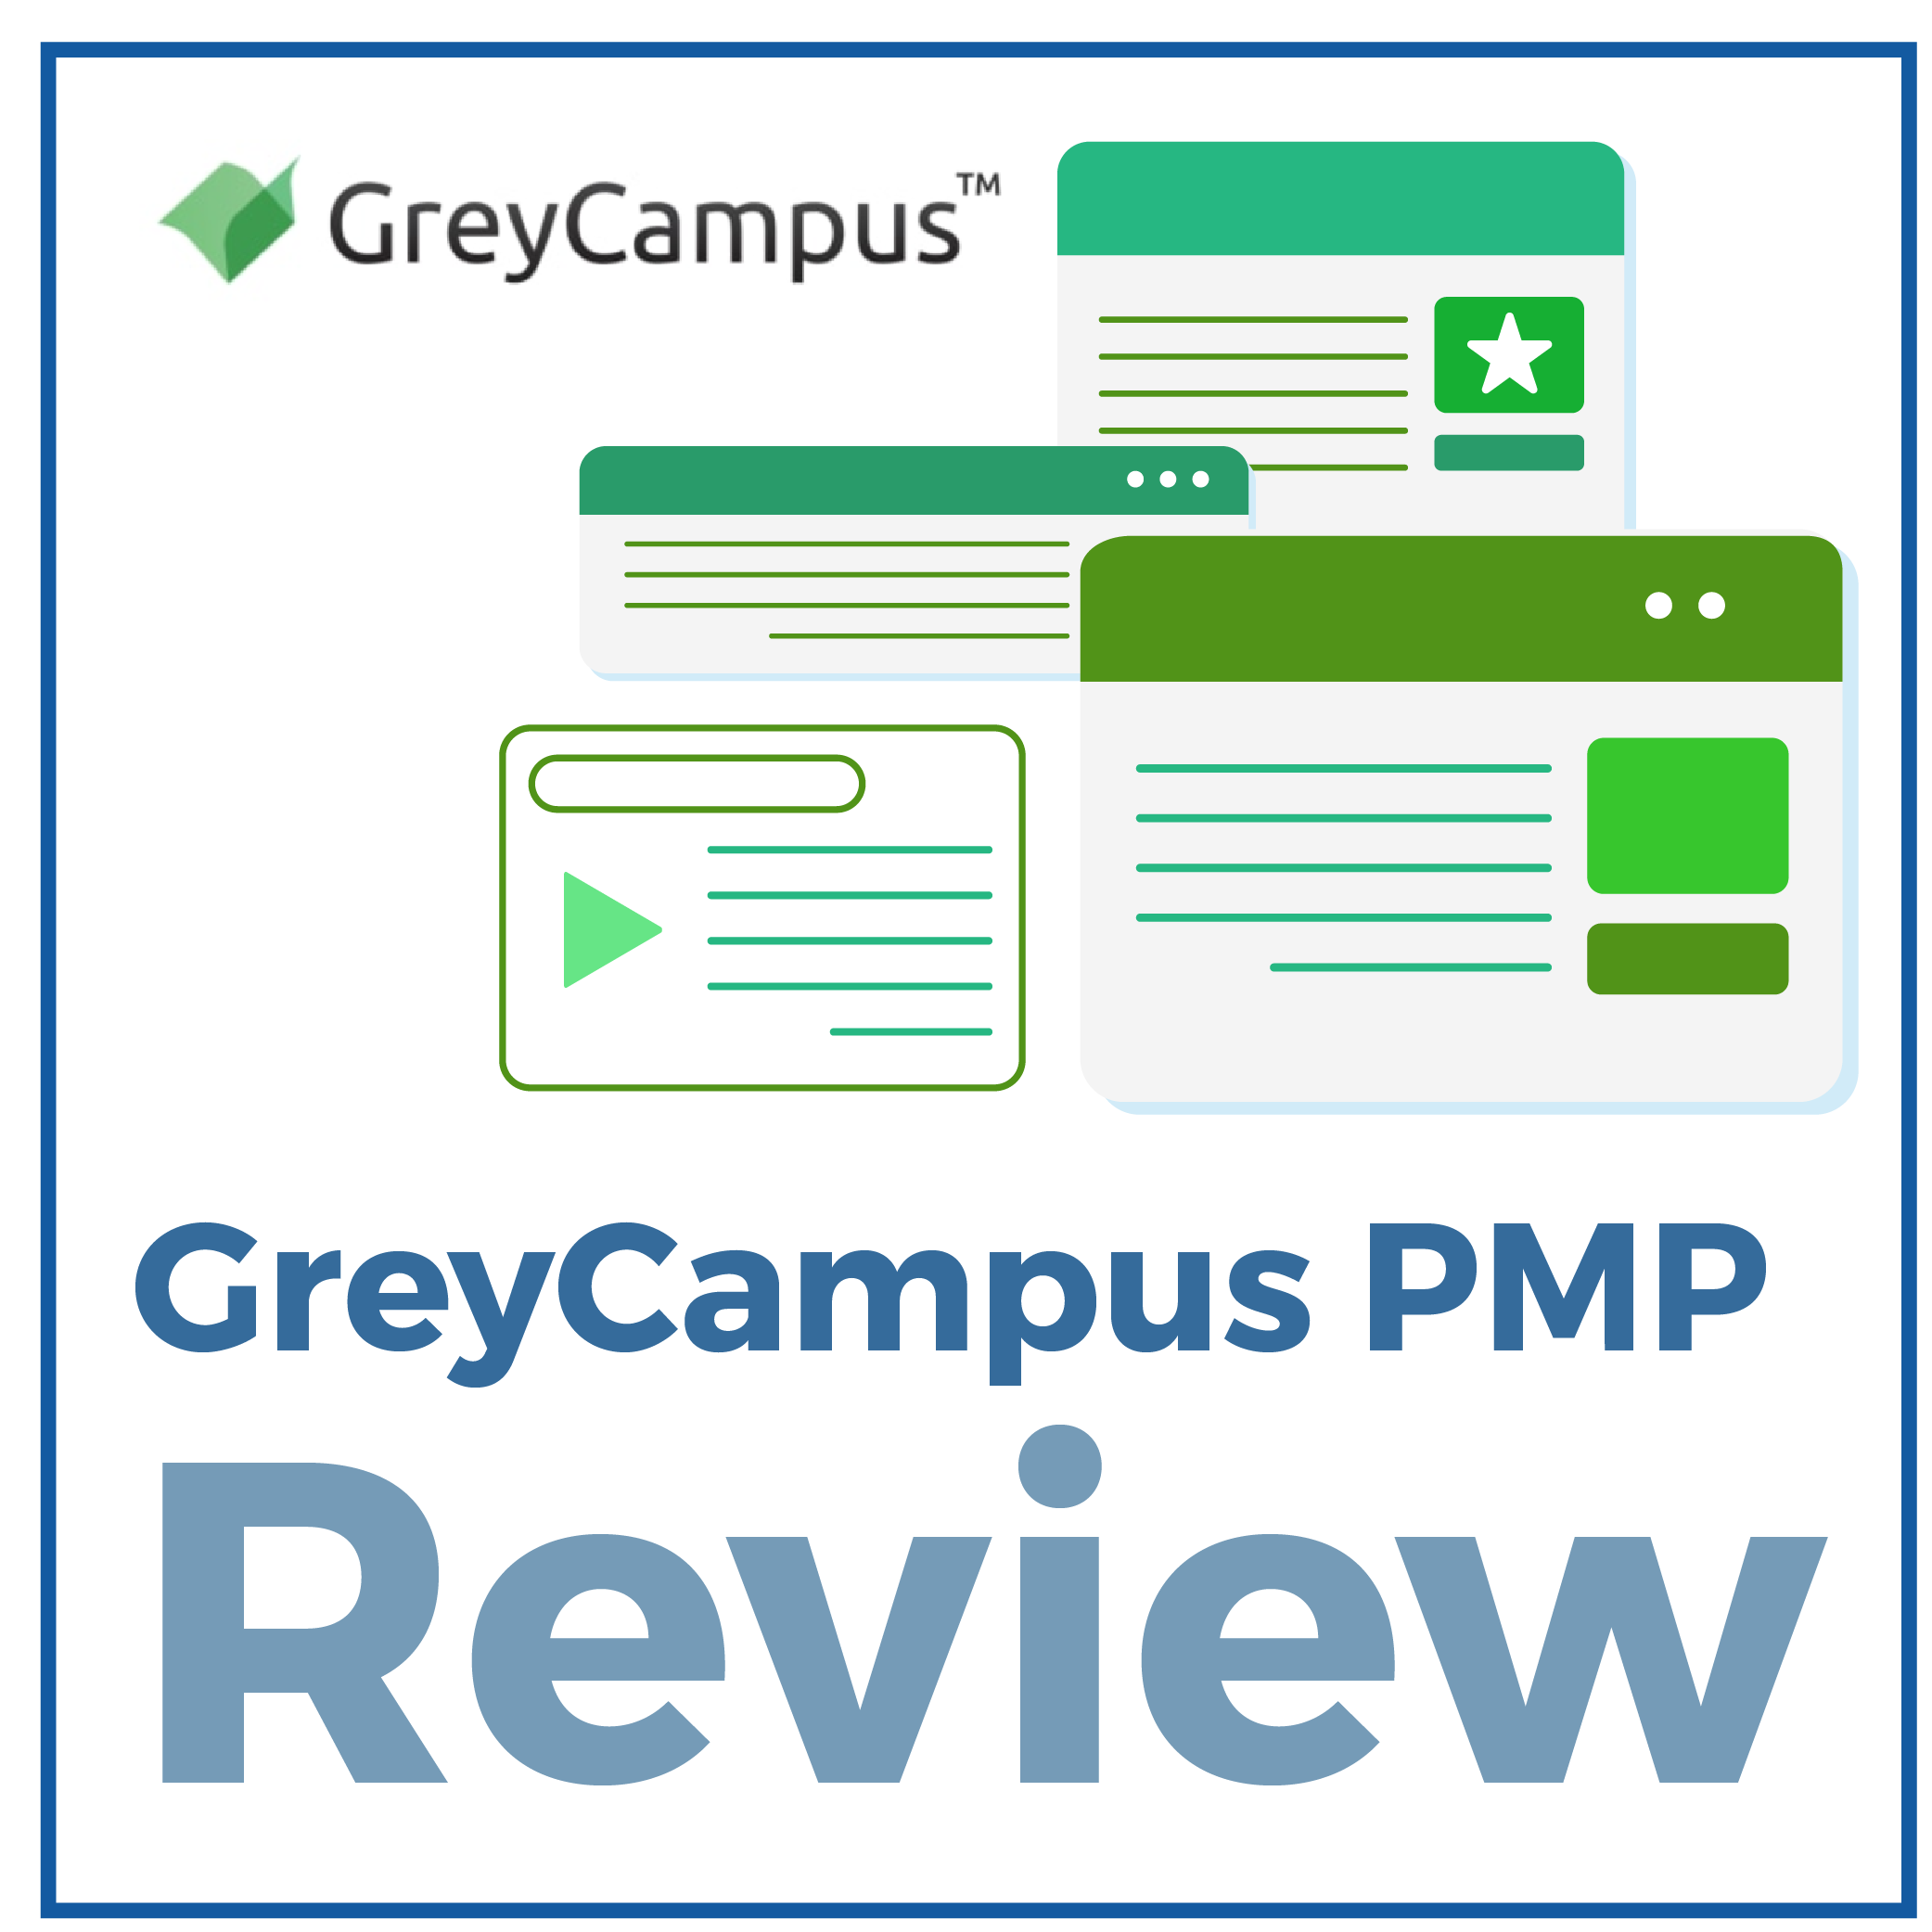 GreyCampus PMP Review